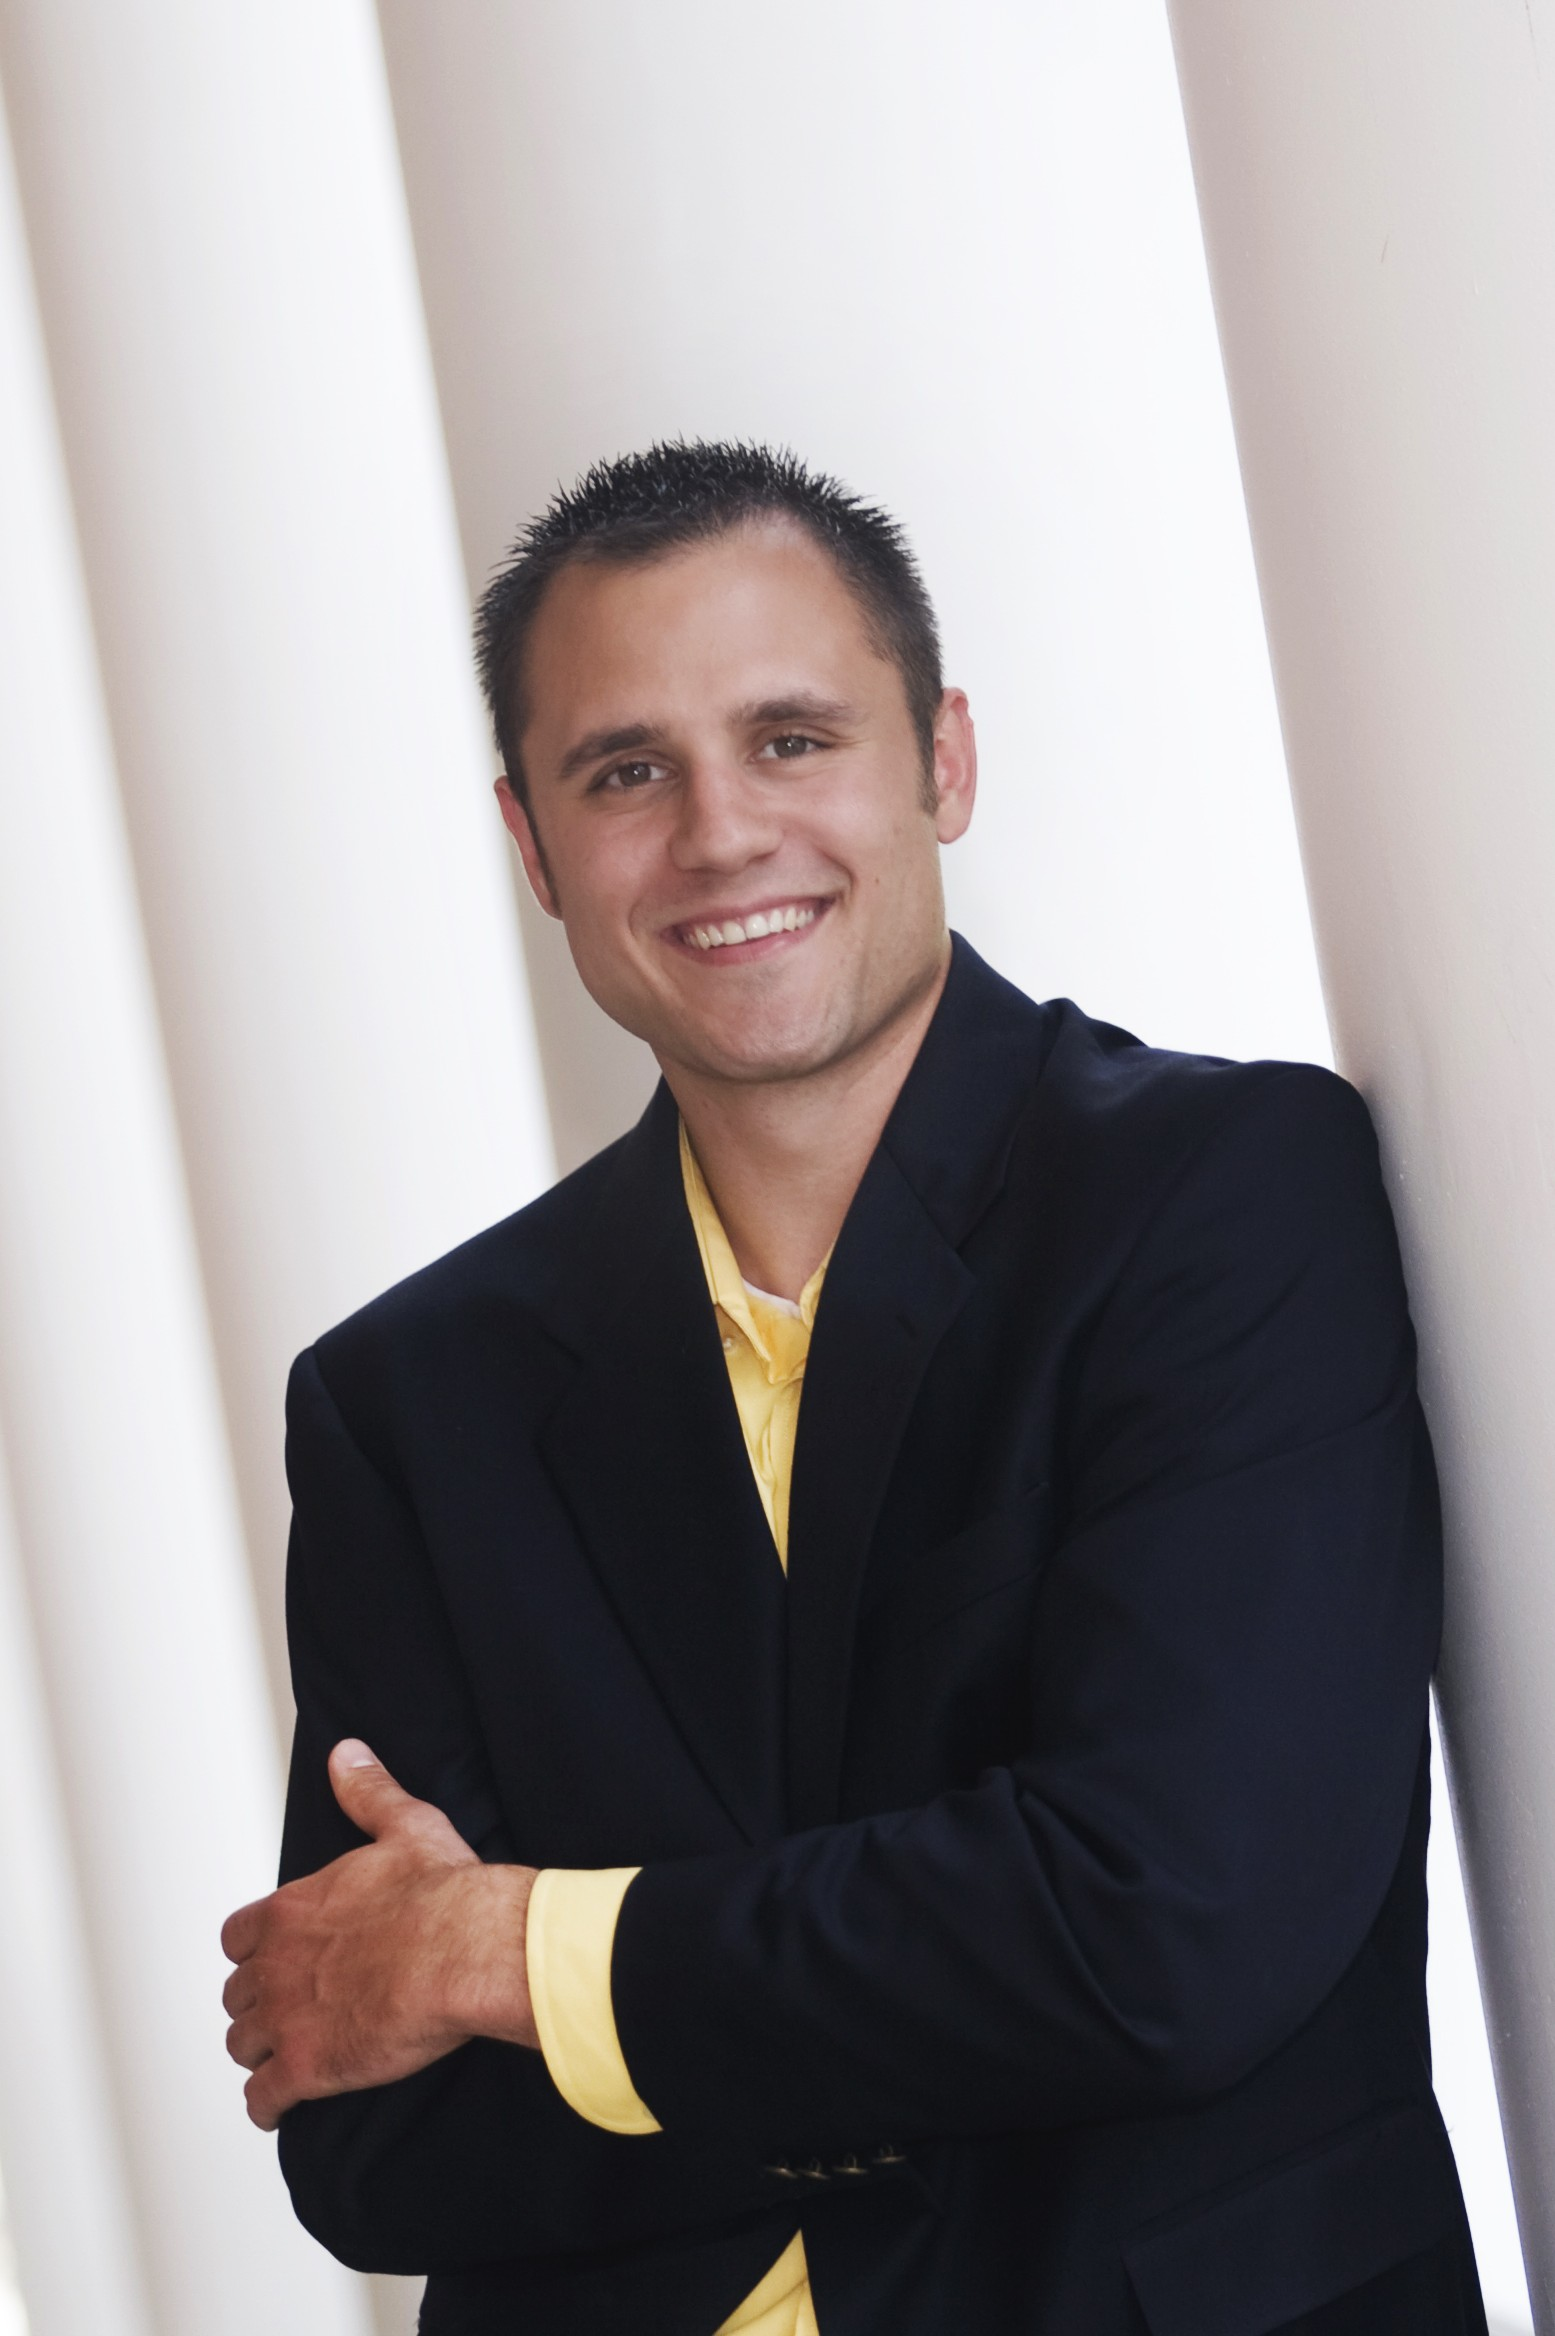 Dr. Alexander J. Rinehart, DC, MS, CCN, CNS is a Chiropractic ...